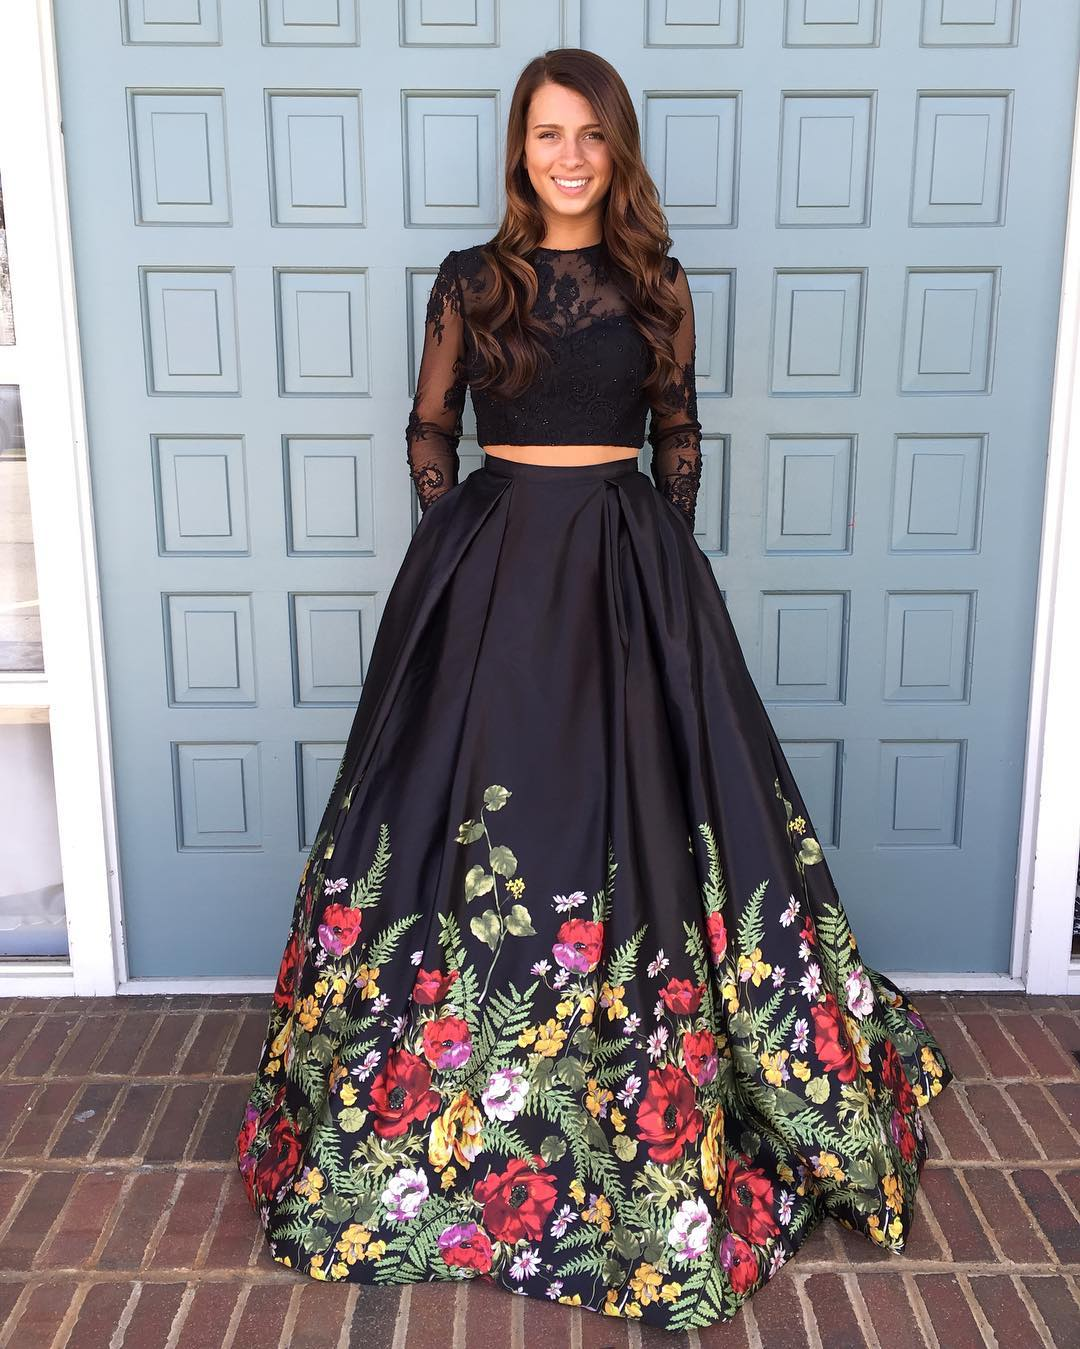 Wonderful Two Piece Prom Floral Long Prom Long Sleeves Prom Dress Two Piece Prom Floral Long Prom Long Sleeves Prom Long Prom Dresses Pockets Long Prom Dresses Amazon wedding dress Long Prom Dresses